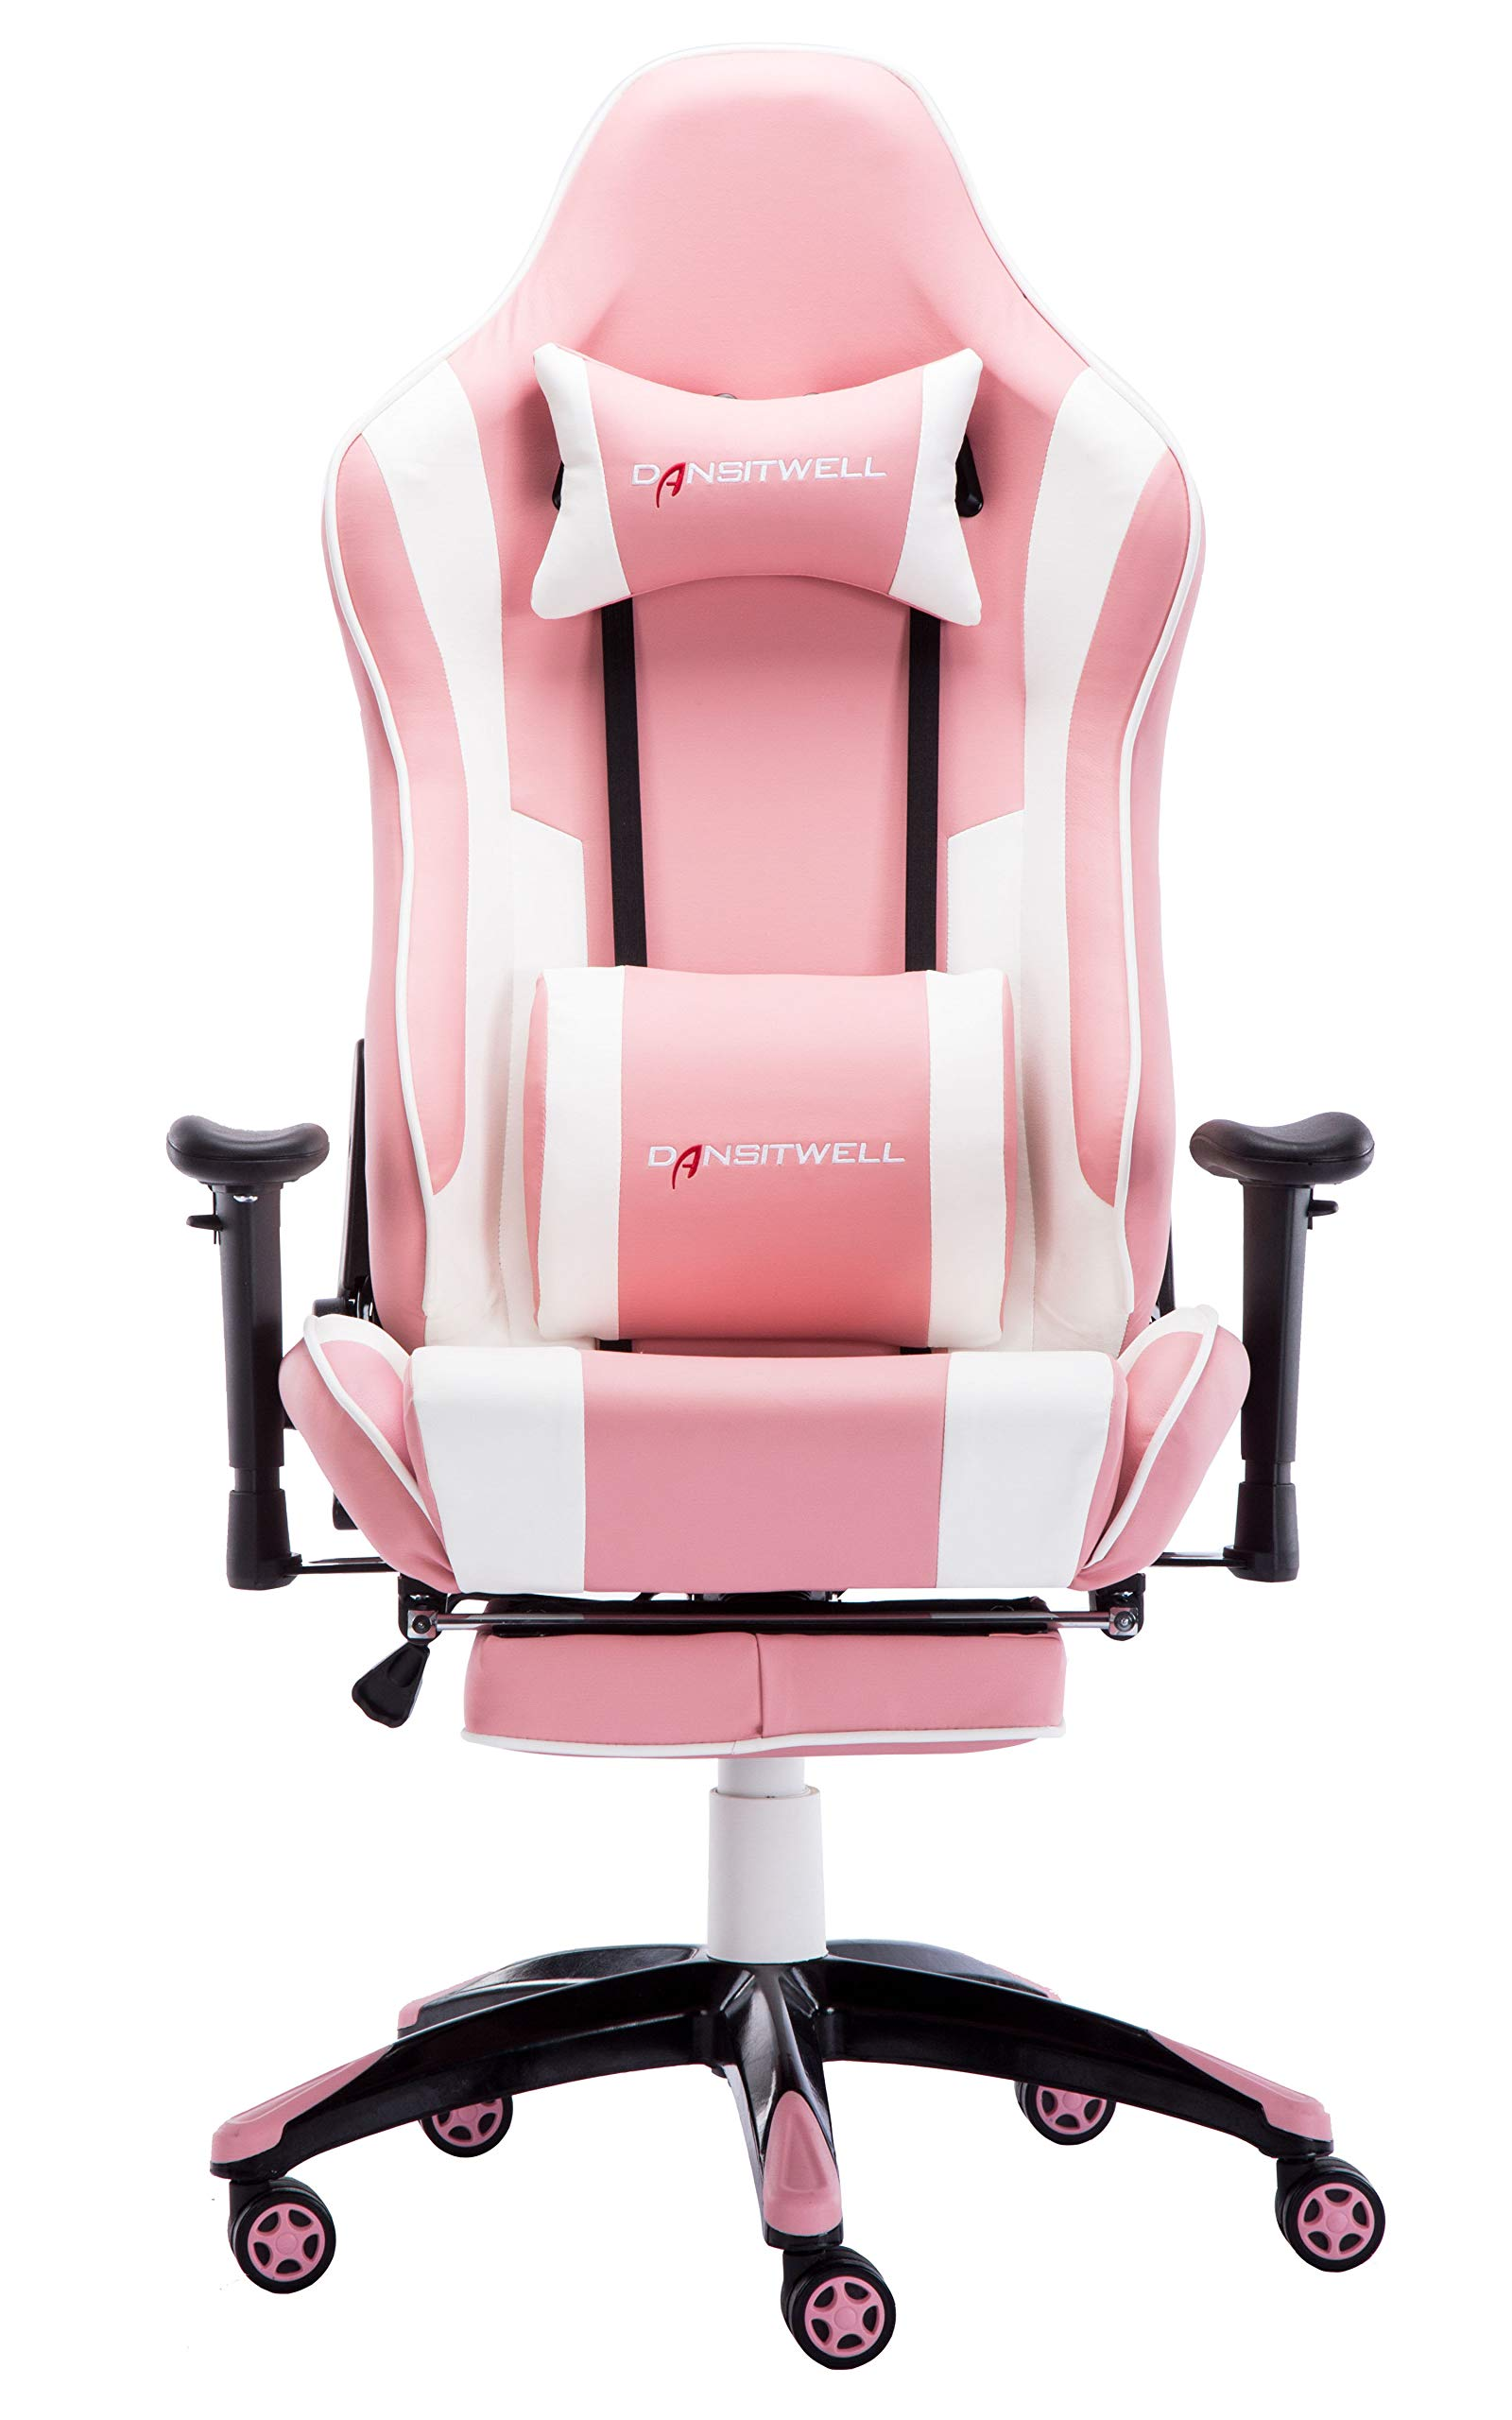 DANSITWELL Gaming Chairs for Adults, Ergonomic Adjustable Racing Chair with Footrest High Back Computer Chair with Headrest and Massage Lumbar Support (Pink) by DANSITWELL